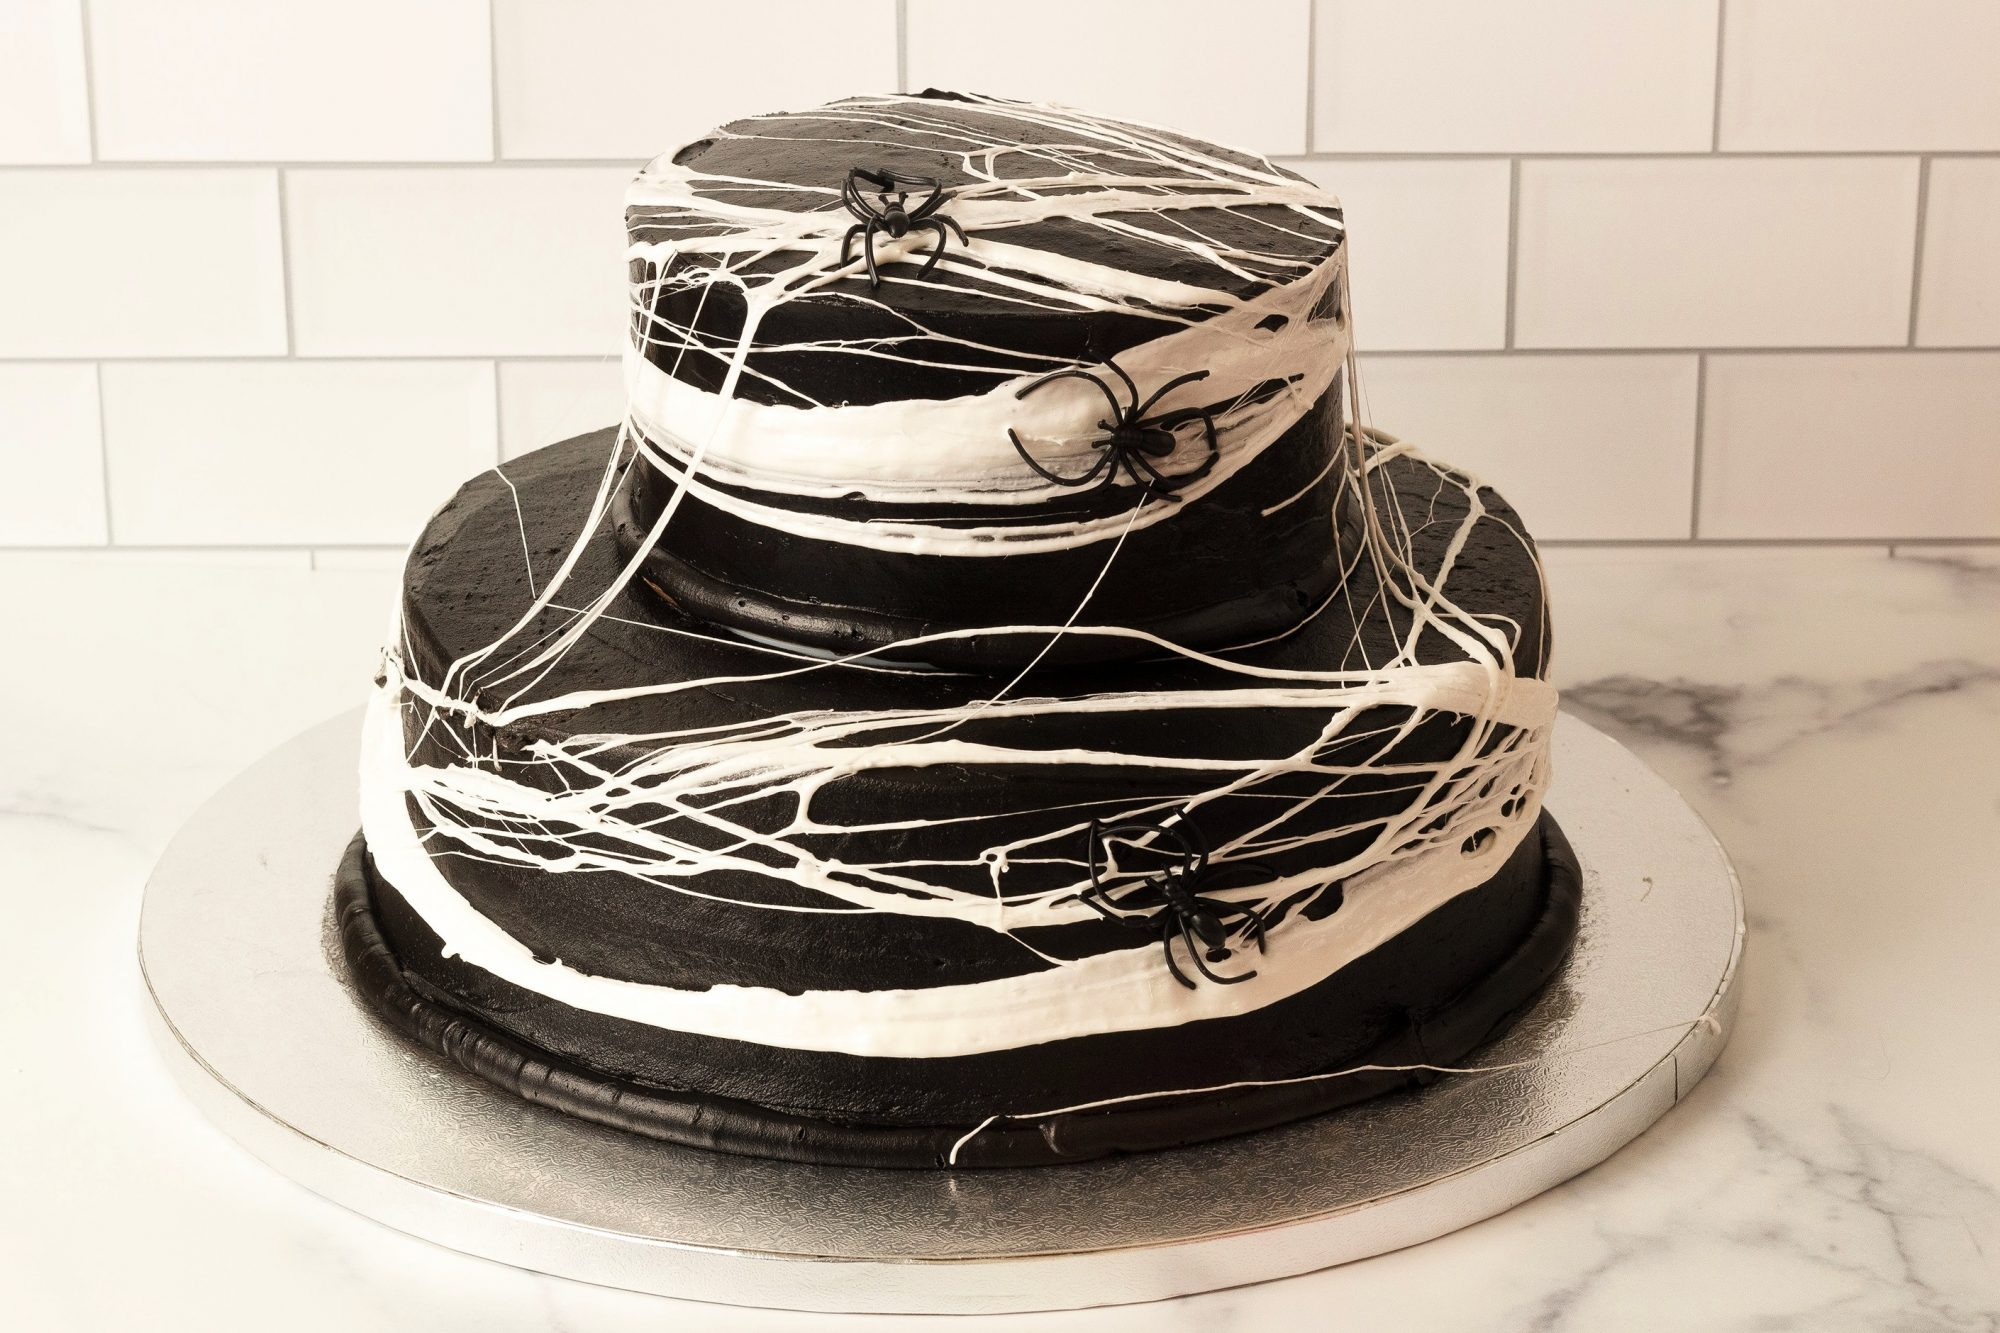 two-tiered cake with dark chocolate frosting and marshmallow spider web decoration